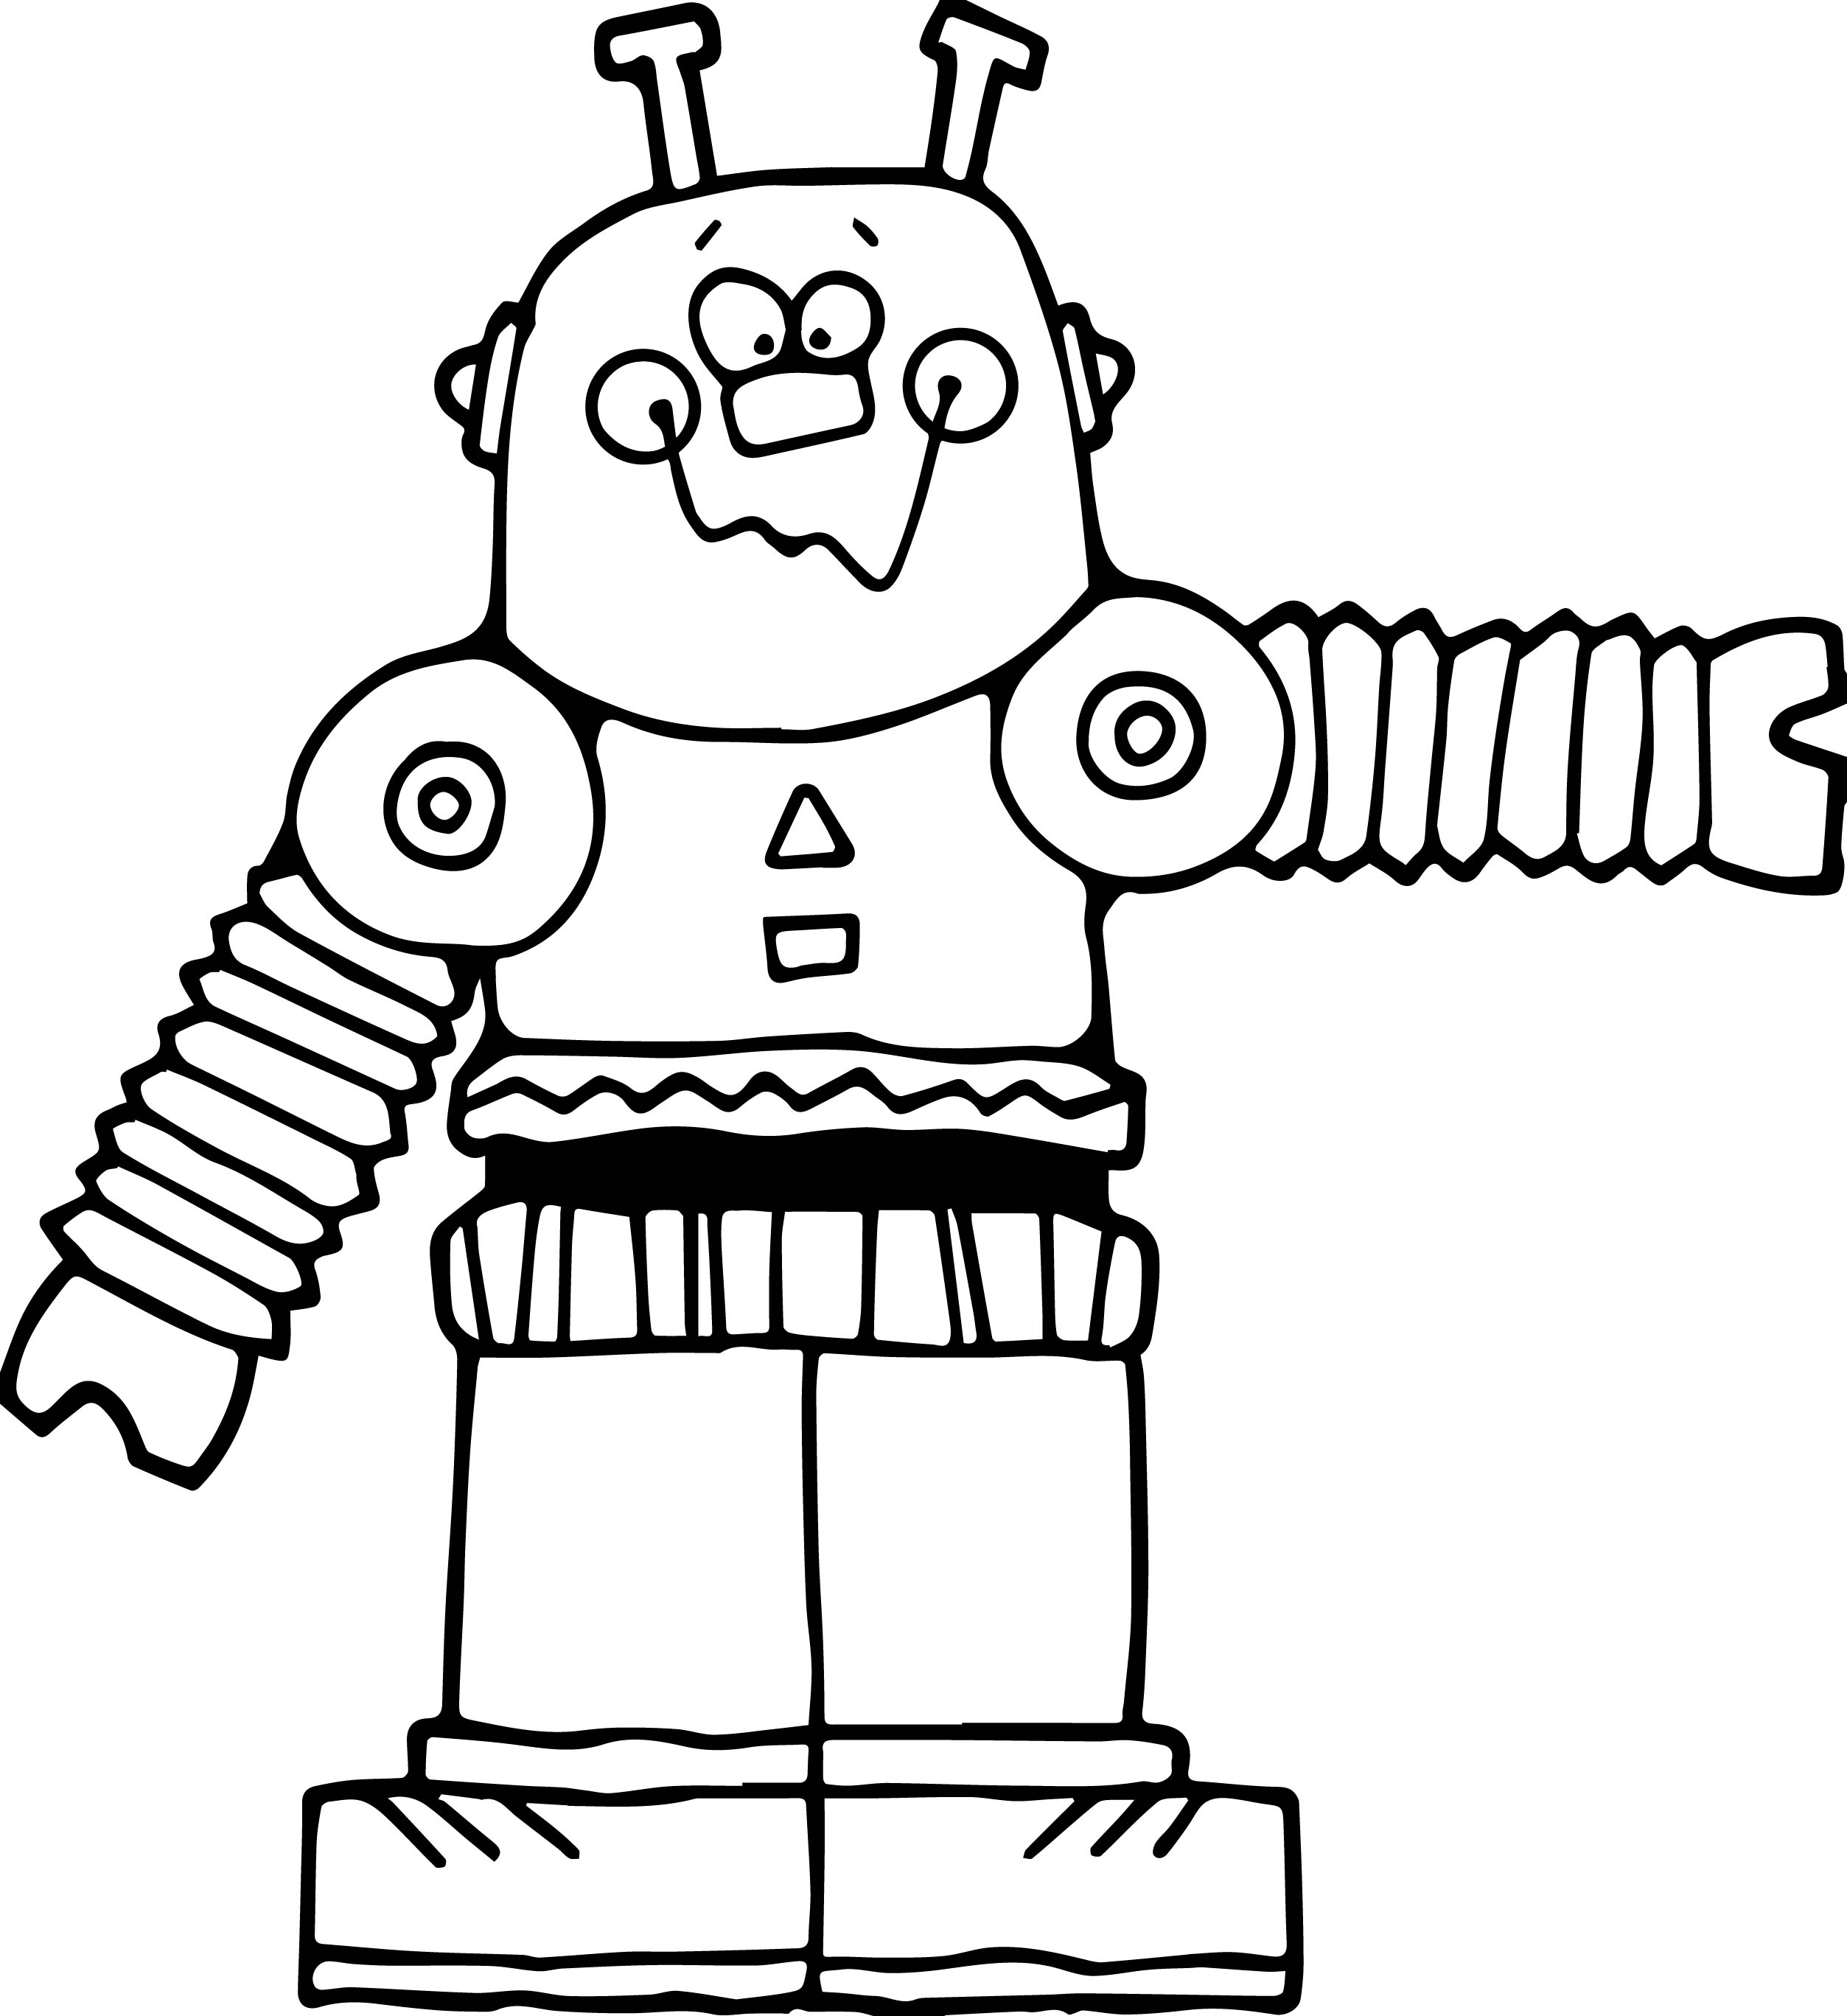 Cute Big Robot Coloring Page